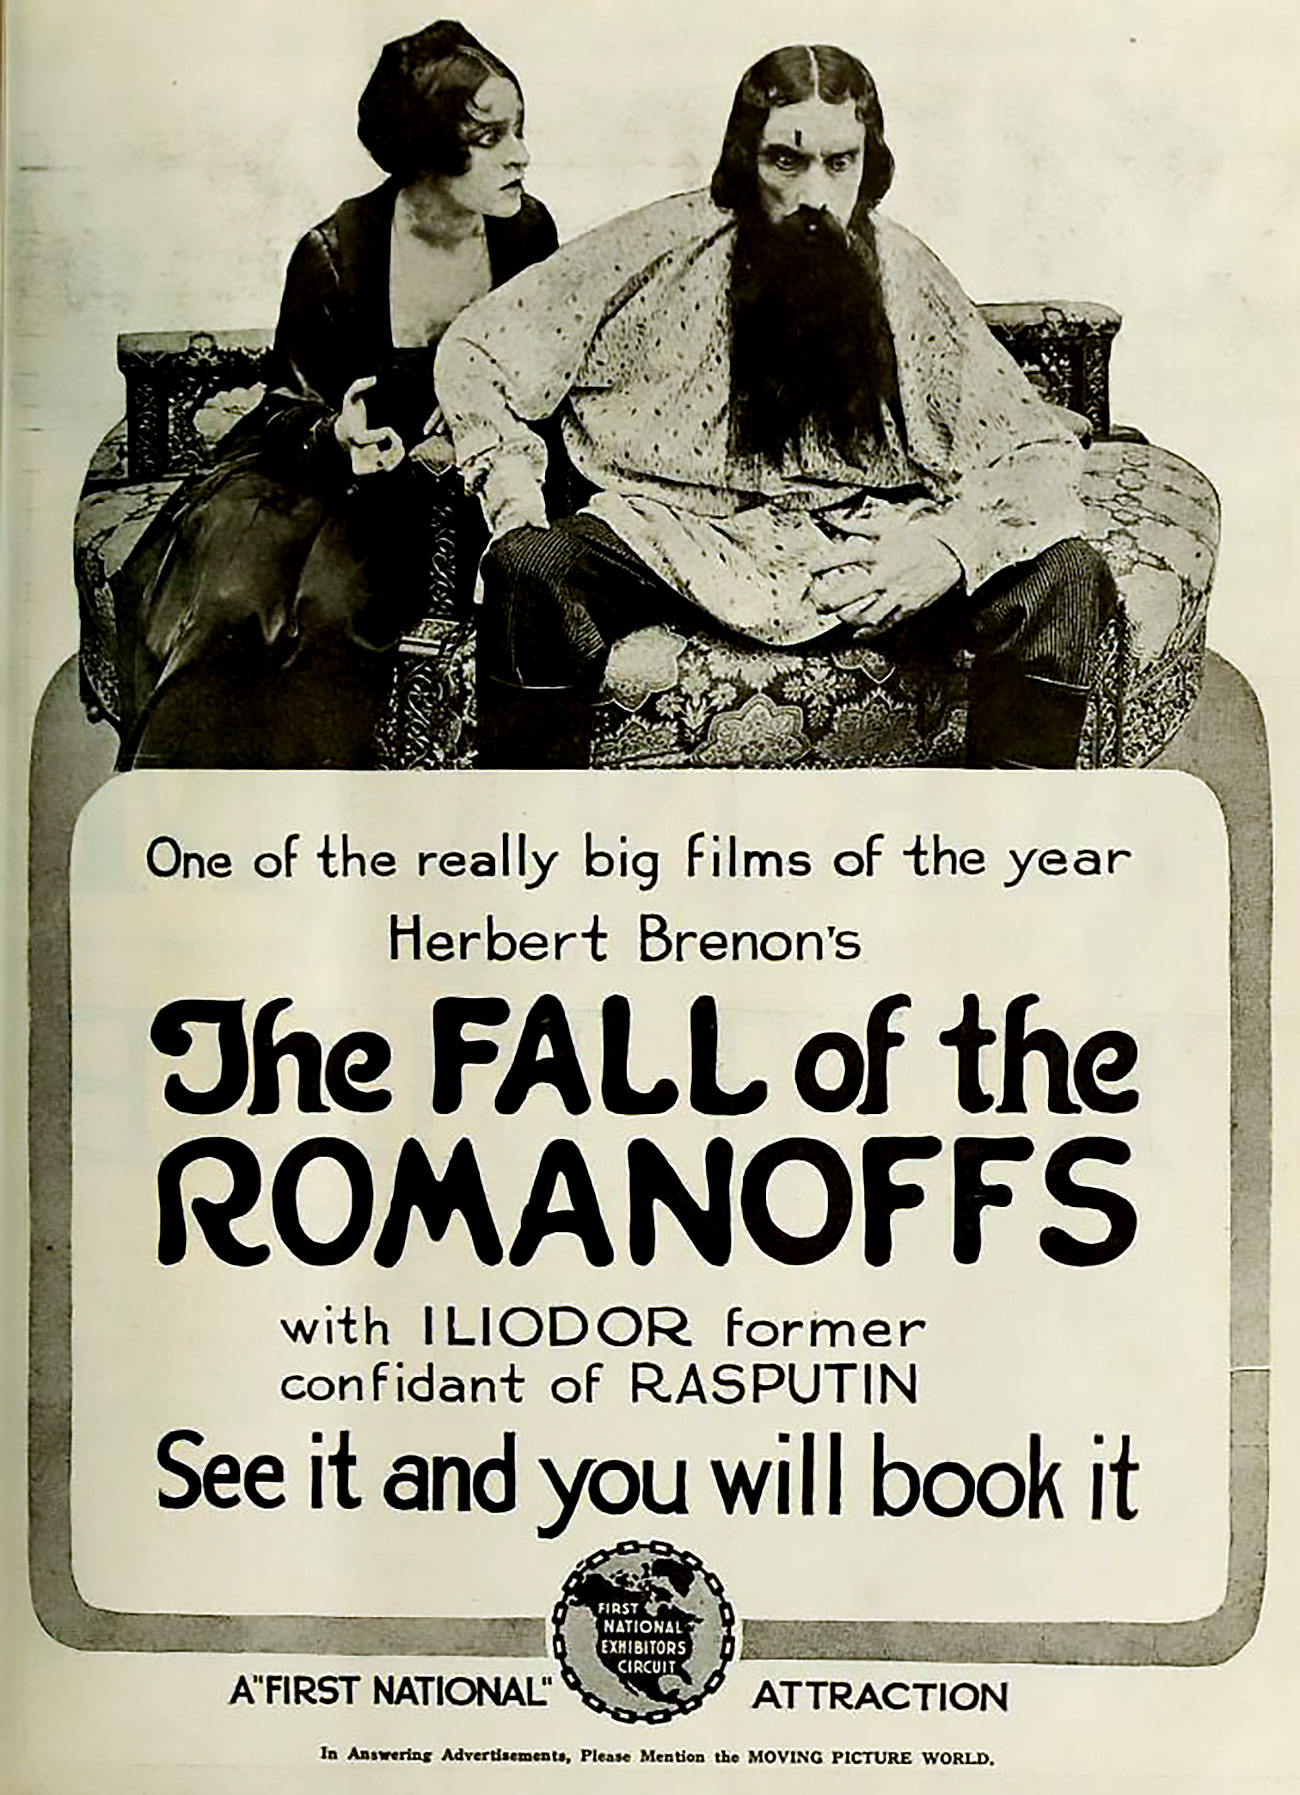 Advertisement in Moving Picture World, May 1918 for the film The Fall of the Romanoffs (1917) with Edward Connelly and Ketty Galanta. / Iliodor Picture Corporation / Herbert Brenon Film Studios / First National